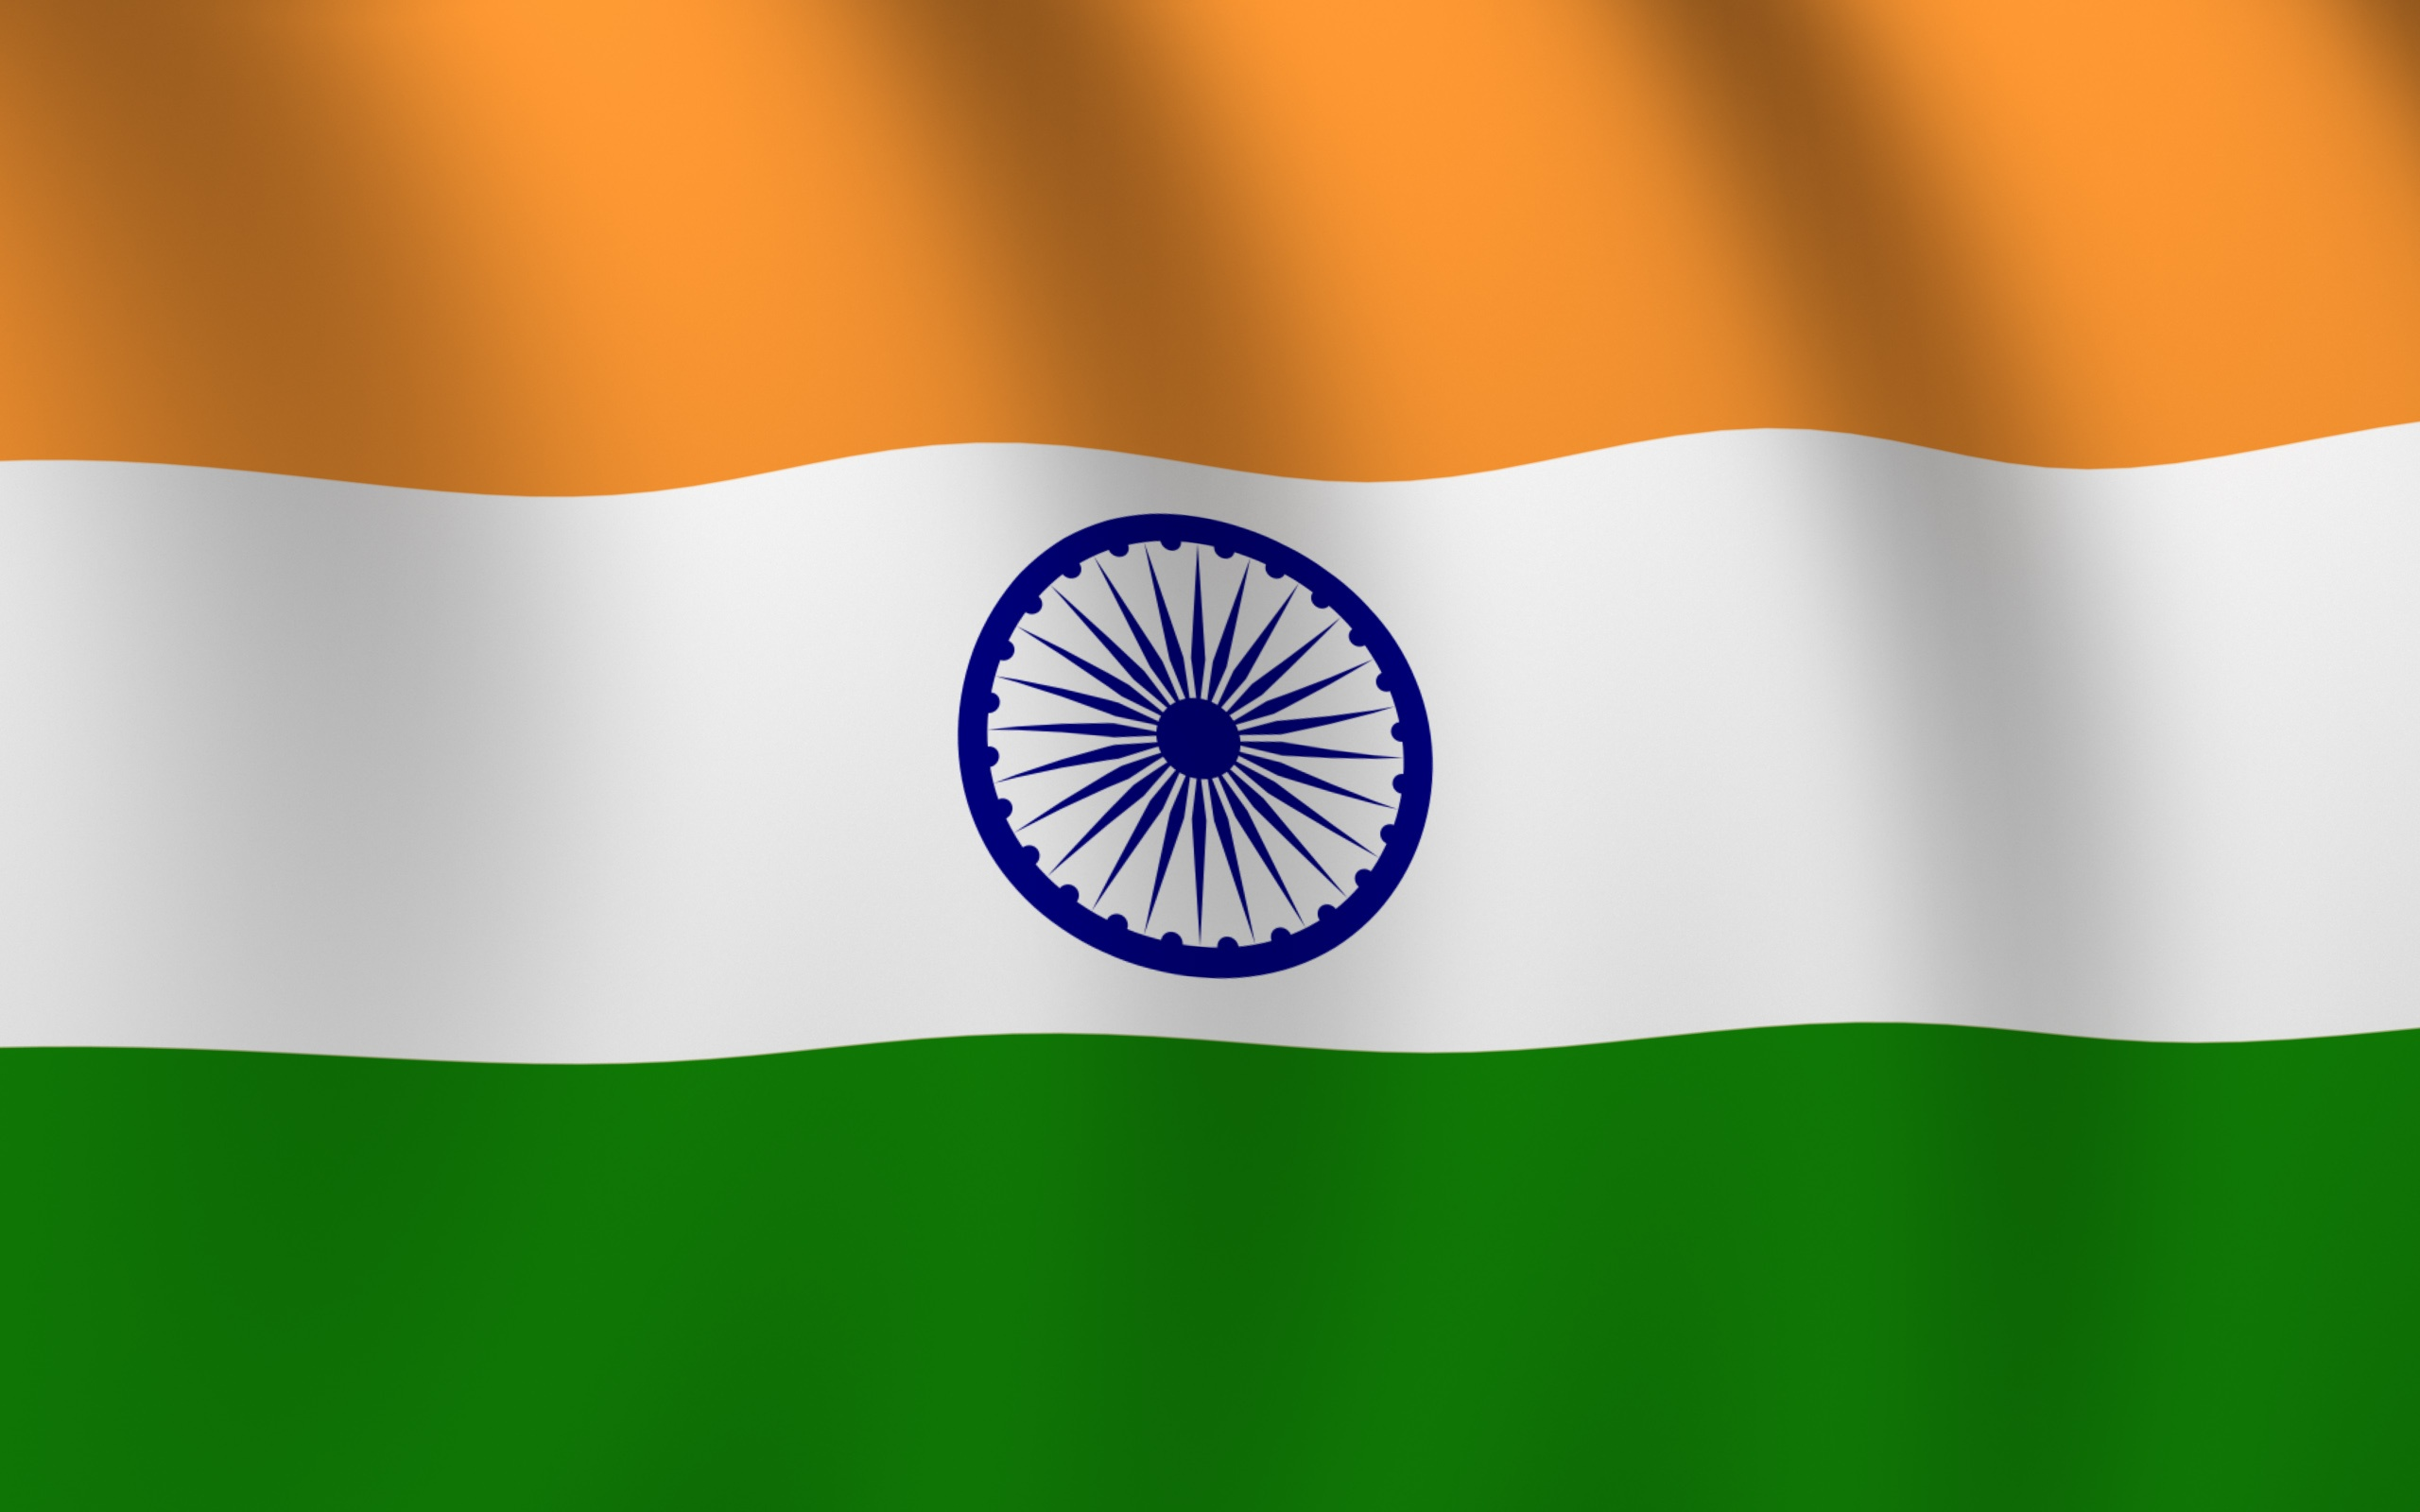 flag of india full hd wallpaper and background image | 2560x1600